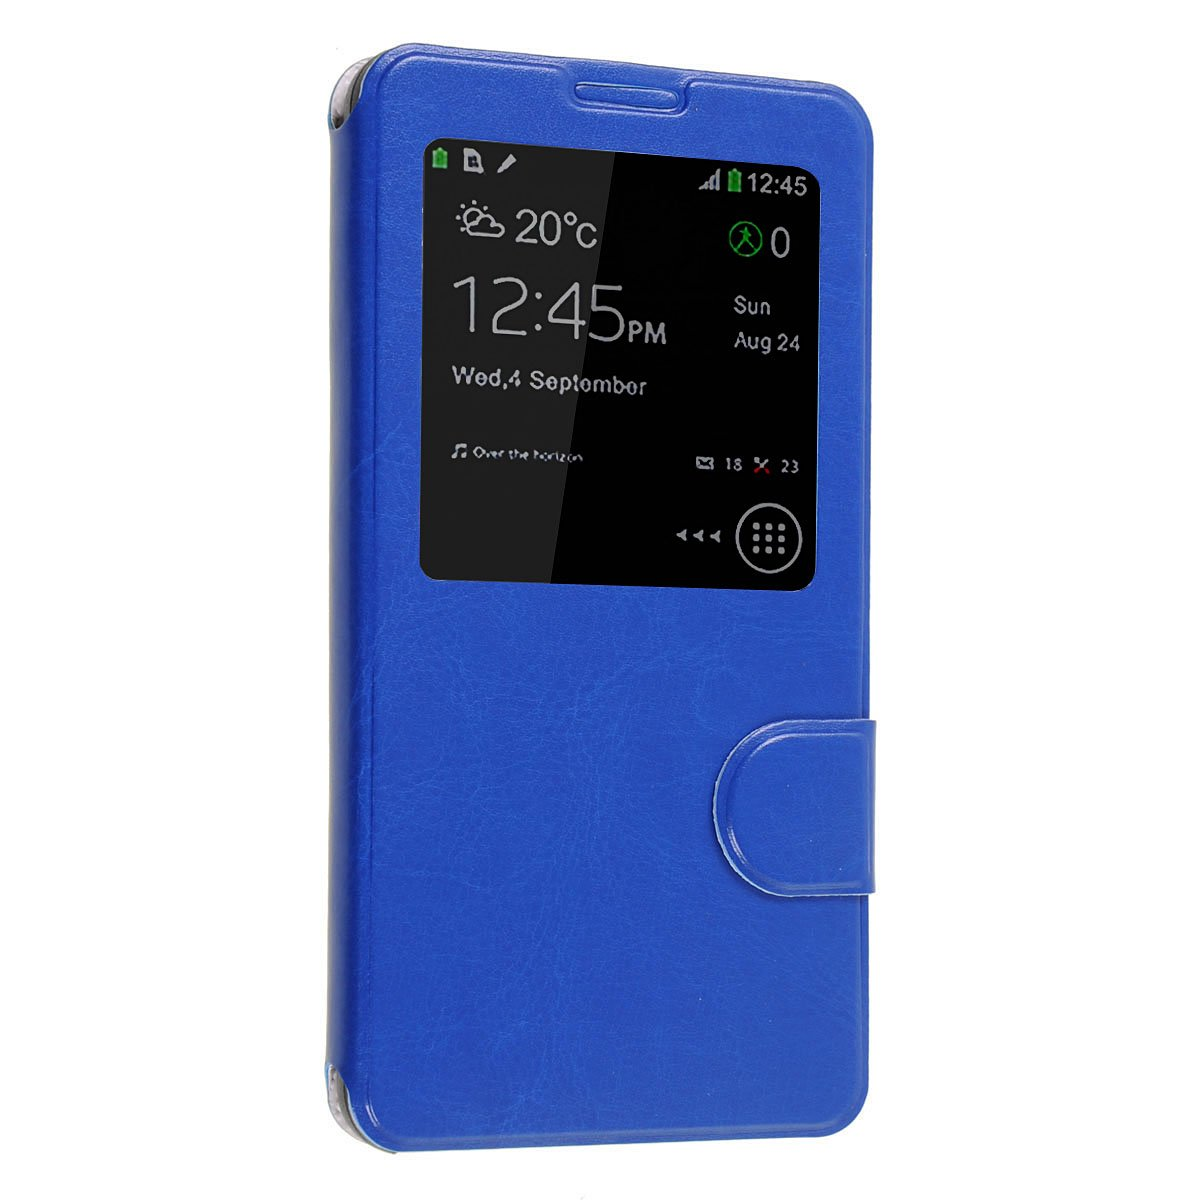 Okeler Hot Blue S-View Flip Cover Leather Case